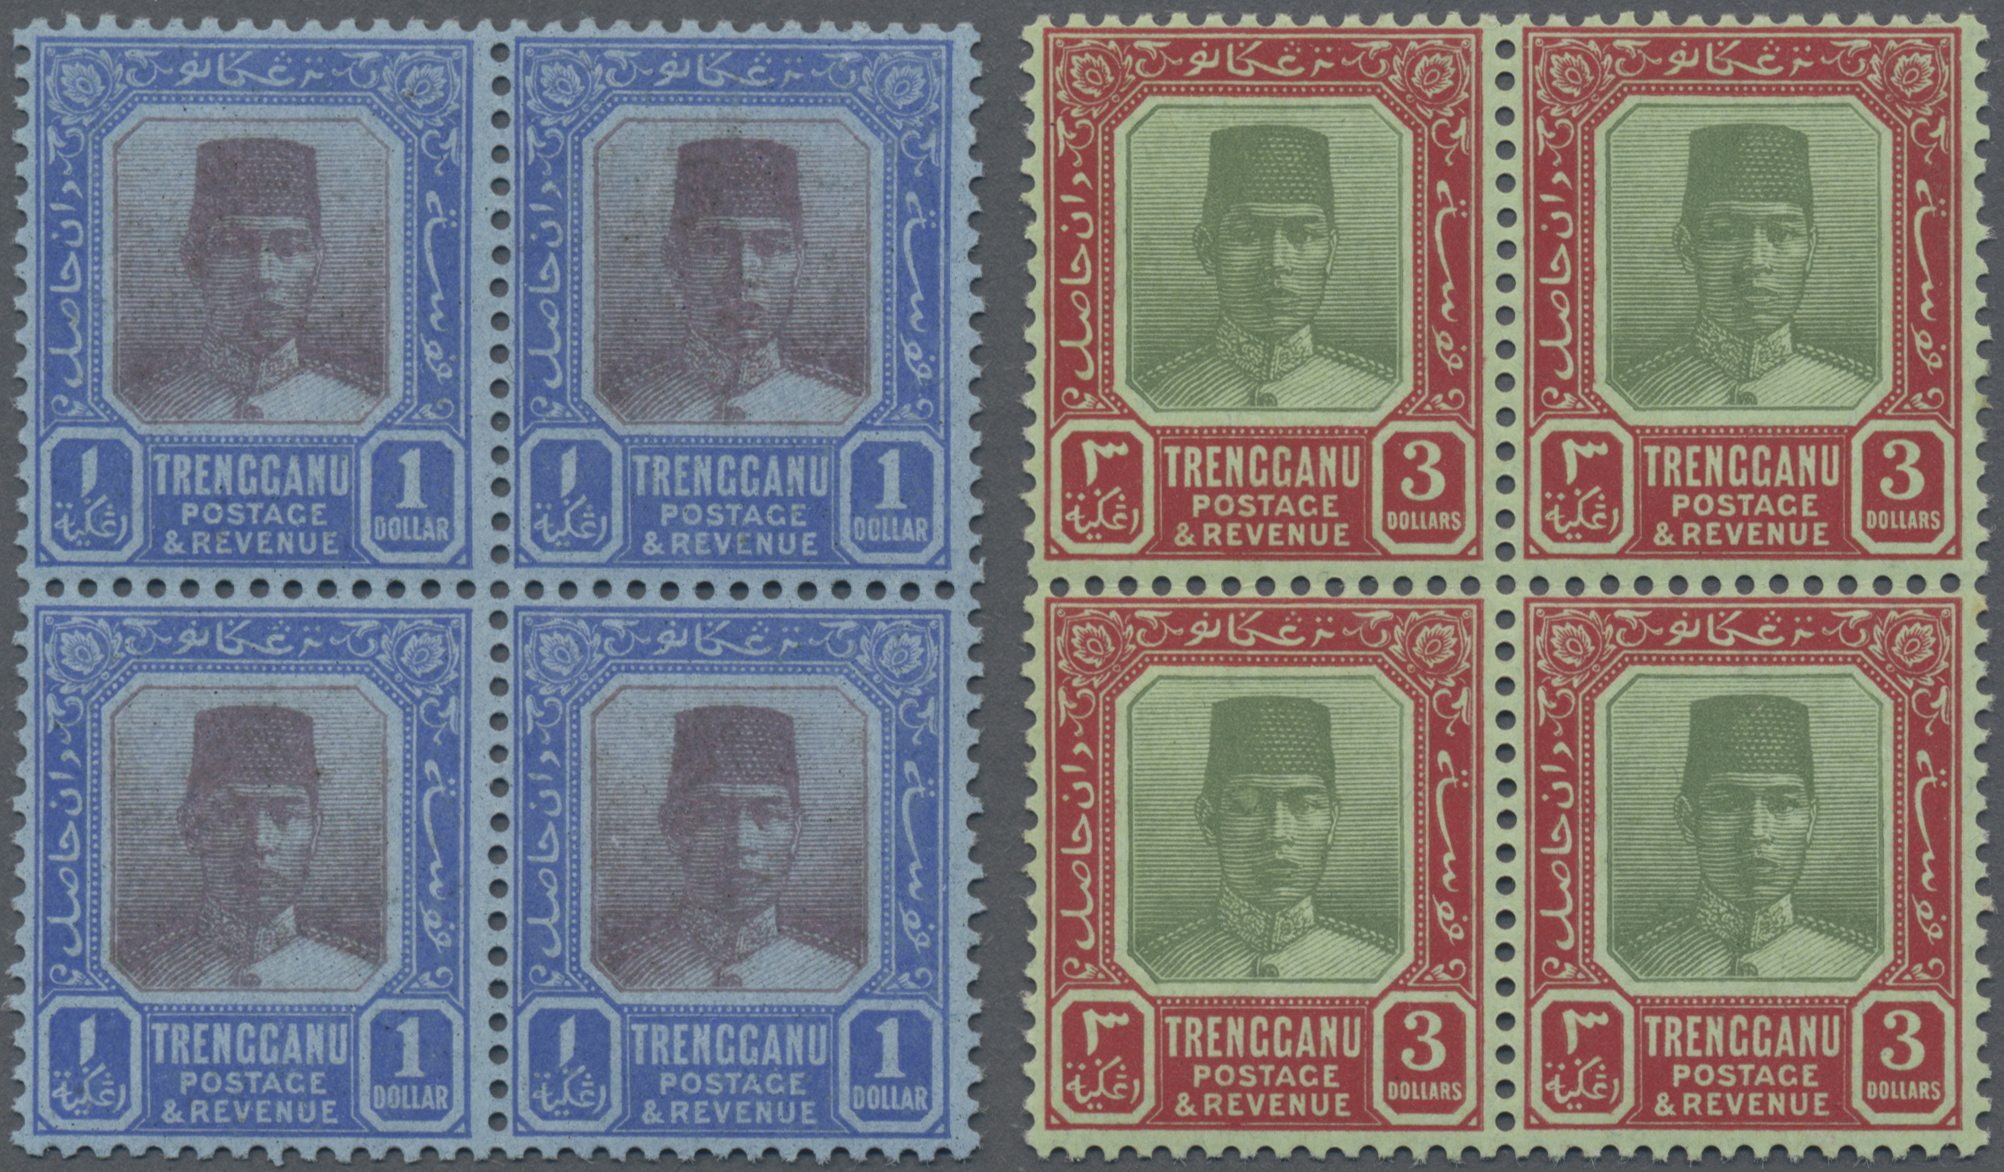 Lot 10112 - Malaiische Staaten - Trengganu  -  Auktionshaus Christoph Gärtner GmbH & Co. KG Philately: ASIA single lots including Special Catalog Malaya Auction #39 Day 3